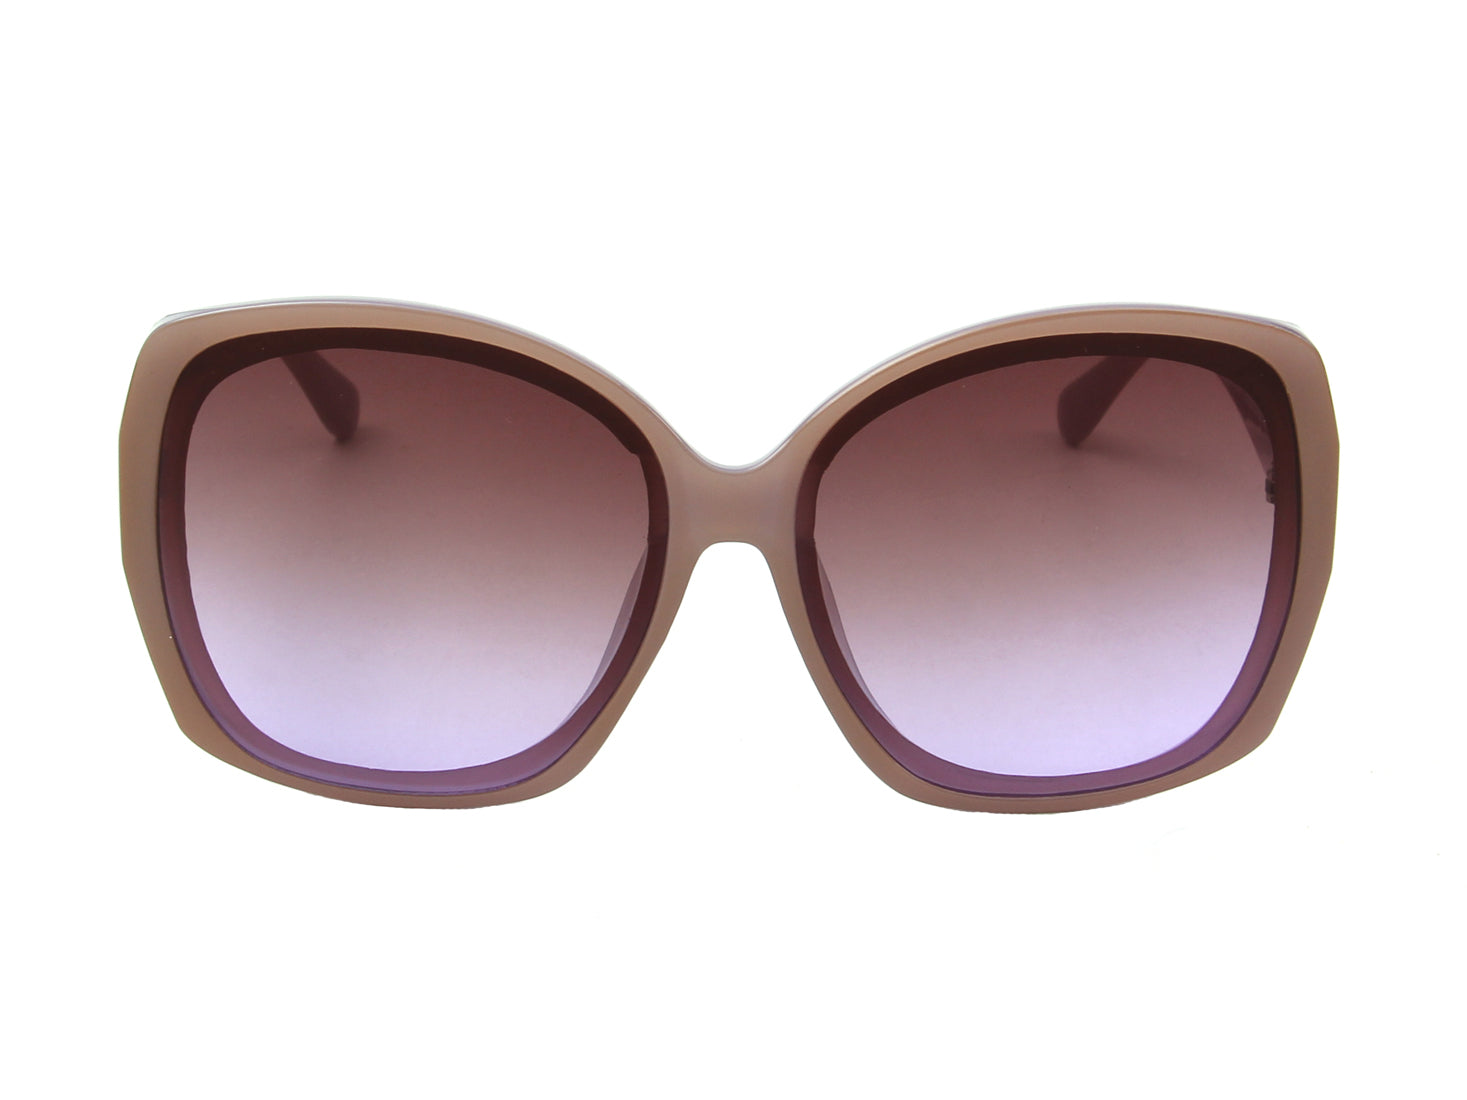 S1140 - Women Square Cat Eye Fashion Sunglasses - Iris Fashion Inc. | Wholesale Sunglasses and Glasses